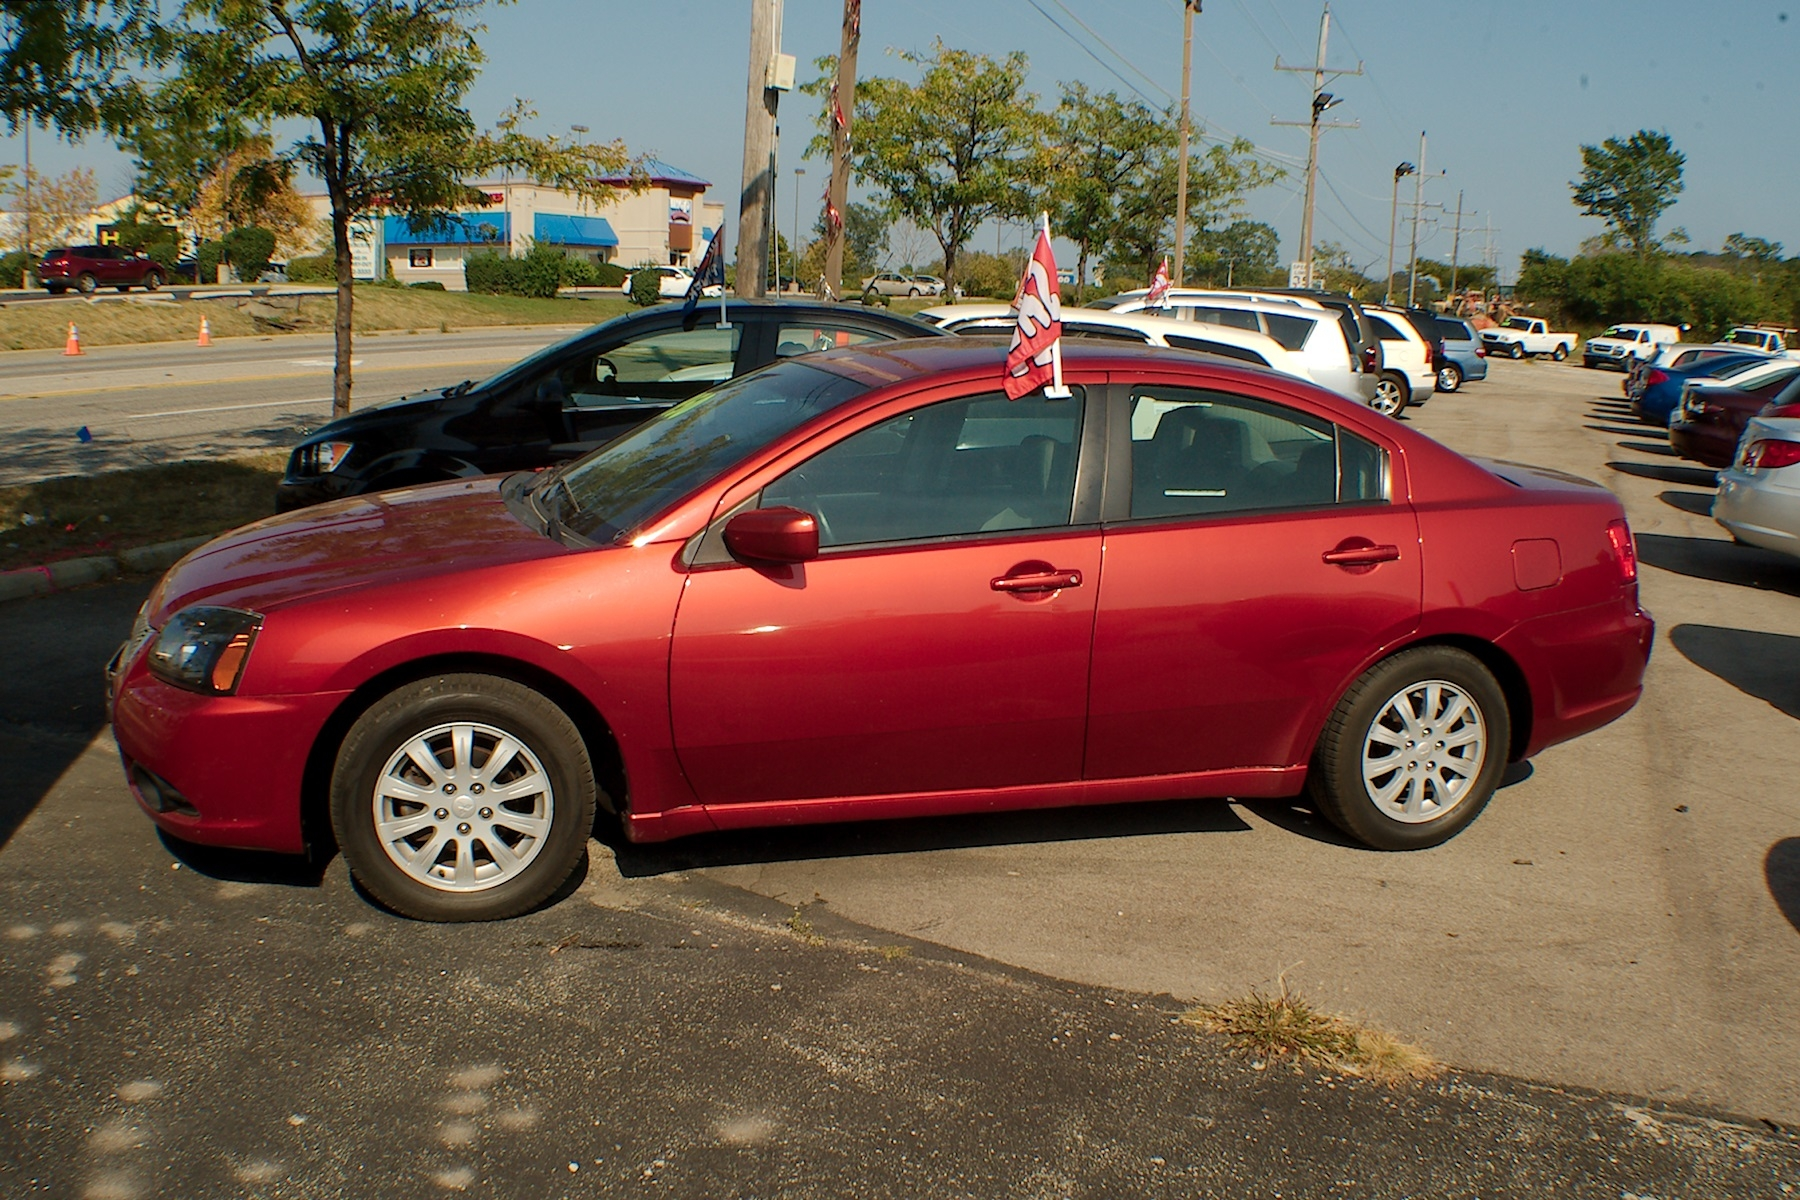 2011 Mitsubishi Galant Red Sedan Used Car Sale Antioch Zion Waukegan Lake County Illinois